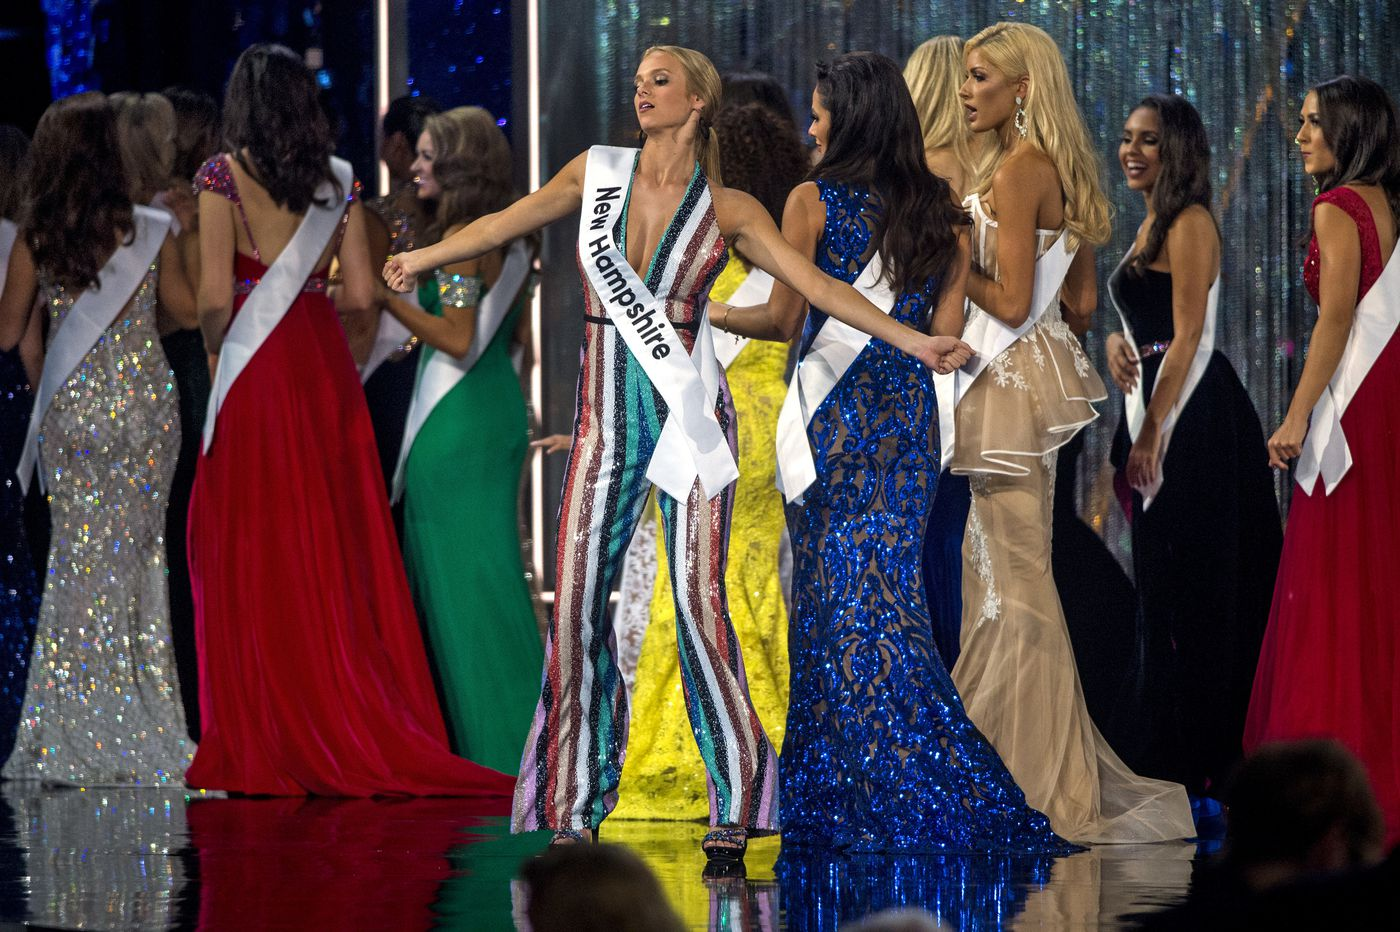 There she is, without a swimsuit: Miss America tries not to sink in Atlantic City